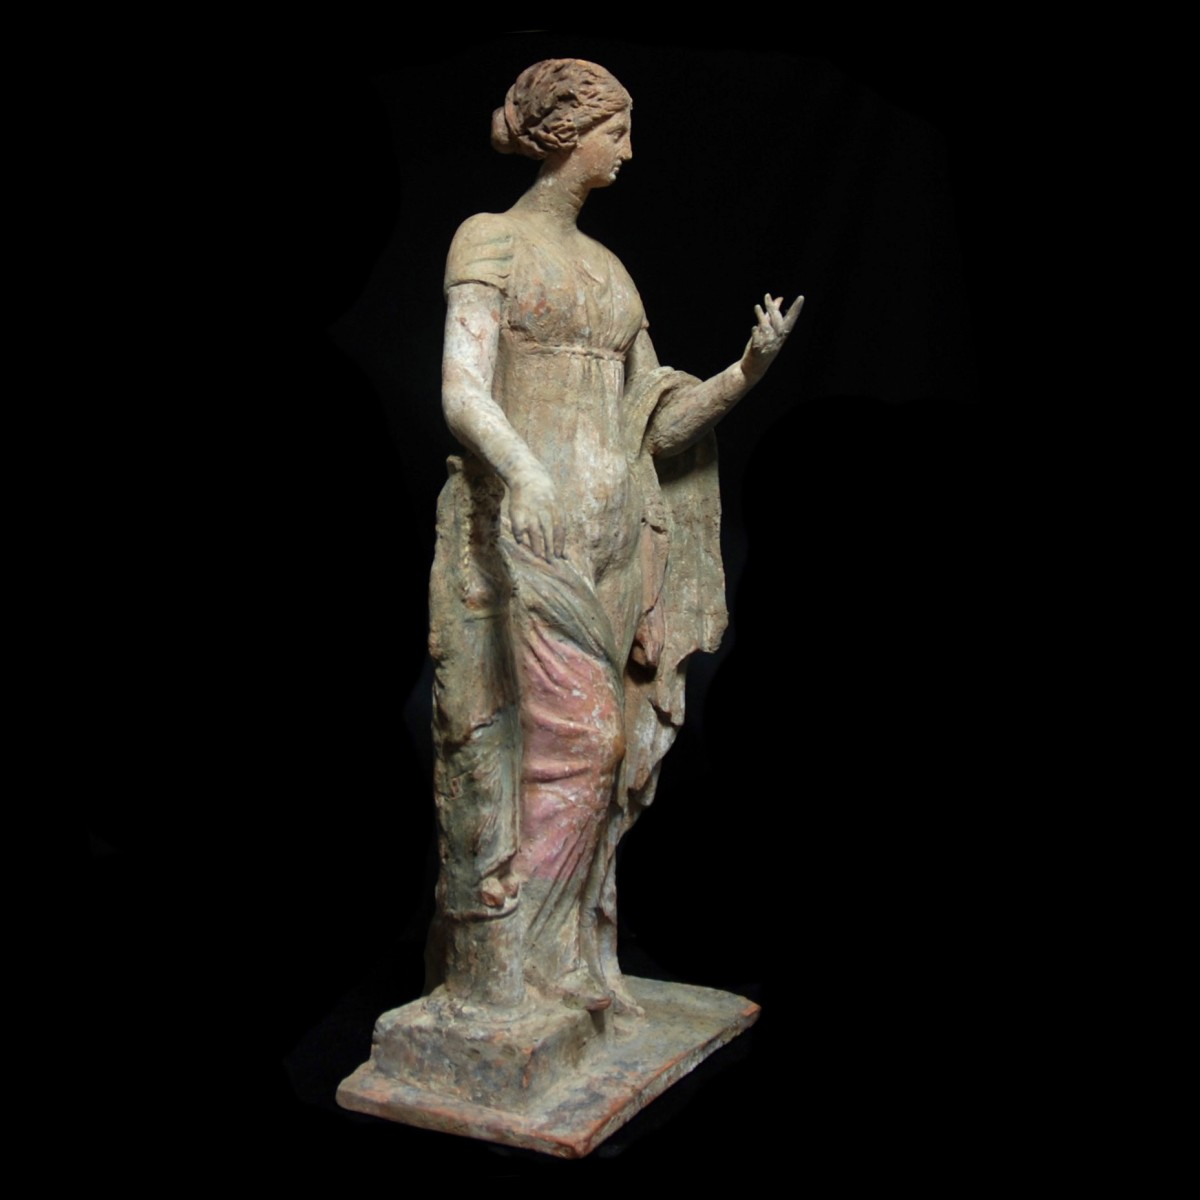 Terracotta statue of Aphrodite leaning on a statue right